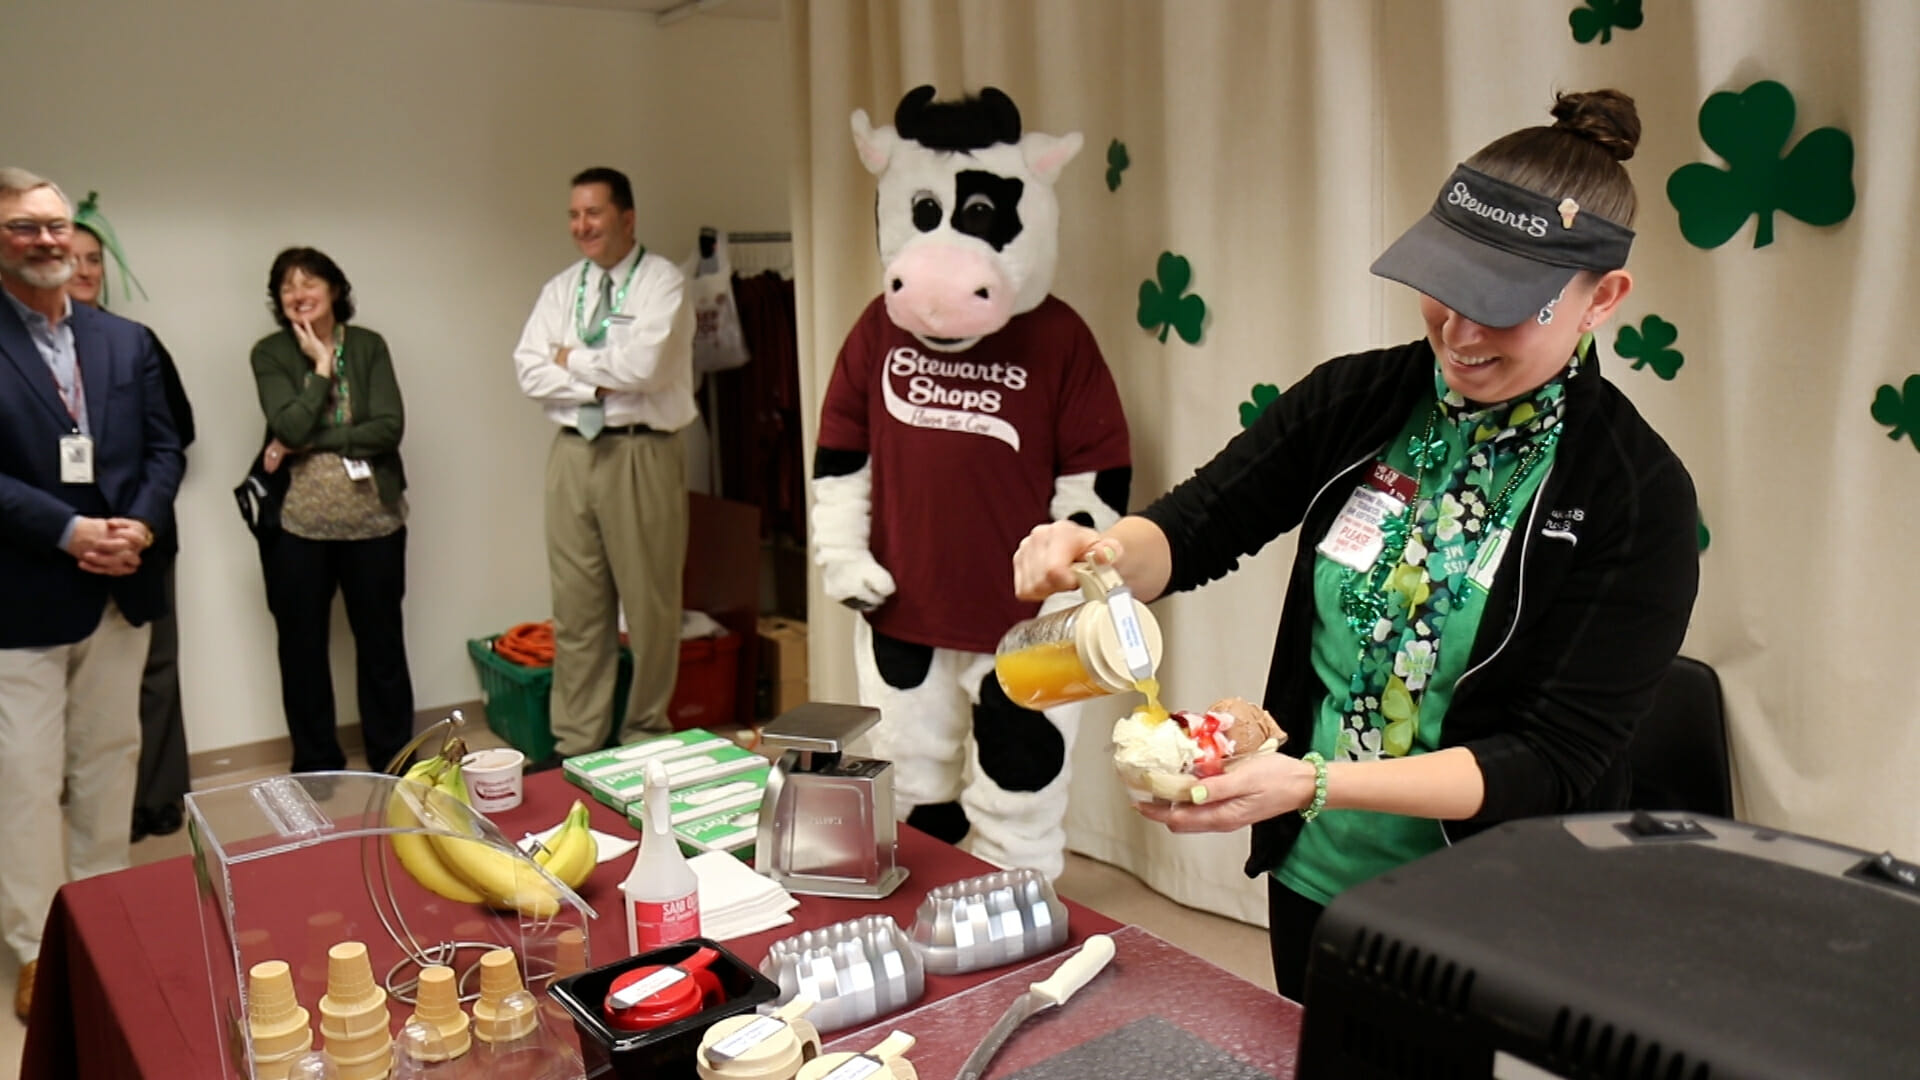 flavor the mascot watches a partner pour topping onto an ice cream sundae